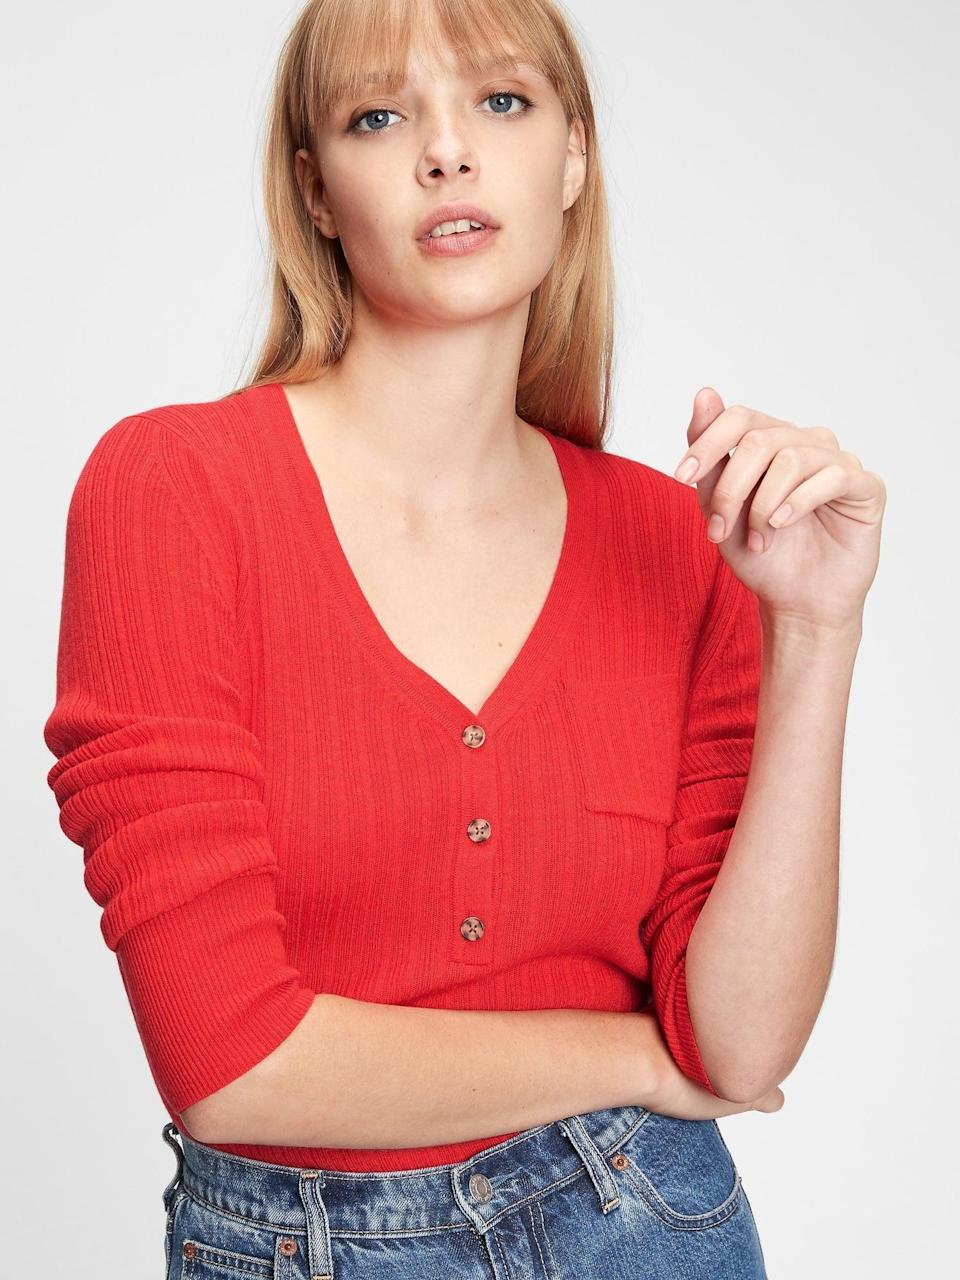 <p>This <span>Gap Ribbed Henley Pocket Sweater</span> ($40, originally $50) is the one I opted for this season. I'm wearing it right now. Super comfortable, I love the polished ribbed style and tortoise buttons that gift a collegiate prep effect. Perfect with a great pair of classic denim.</p>